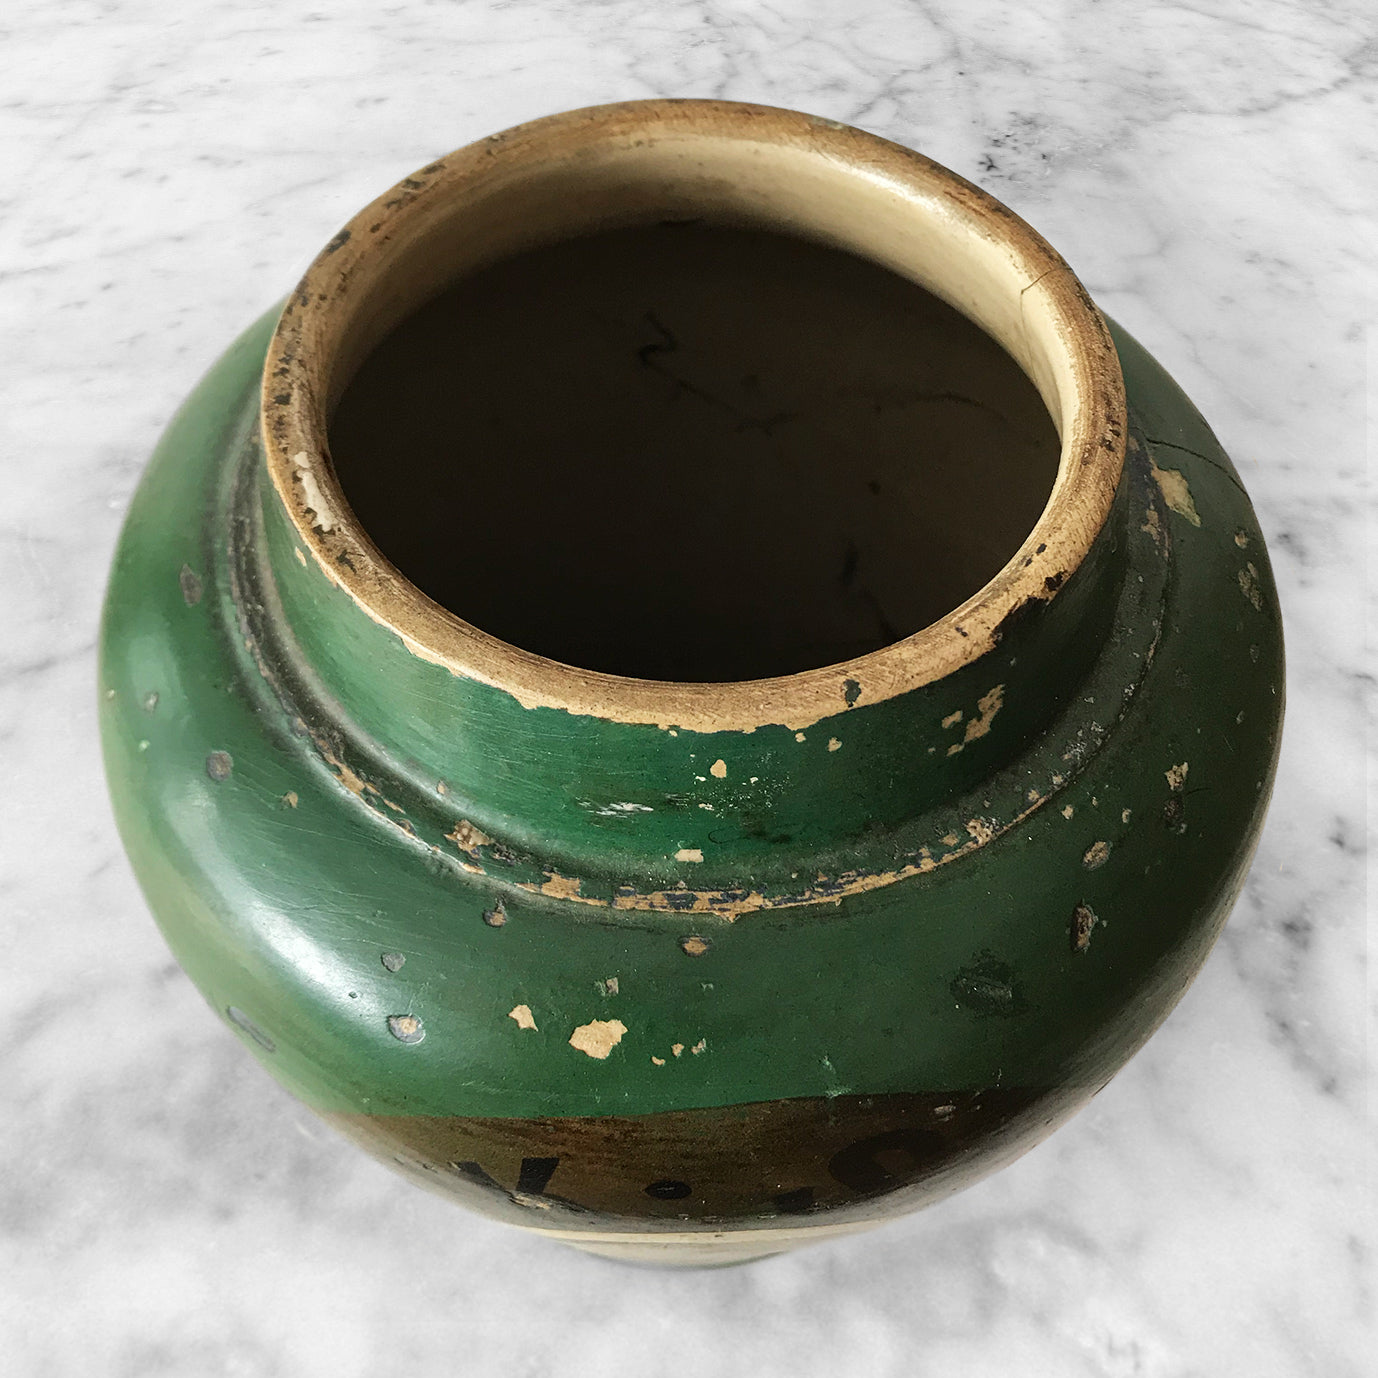 Antique Dark Shag Tobacco Jar. Finished in a wonderfully distressed deep bottle green with the words 'DARK SHAG' on a gold background above the image of a young lady in period dress - SHOP NOW - www.intovintage.co.uk